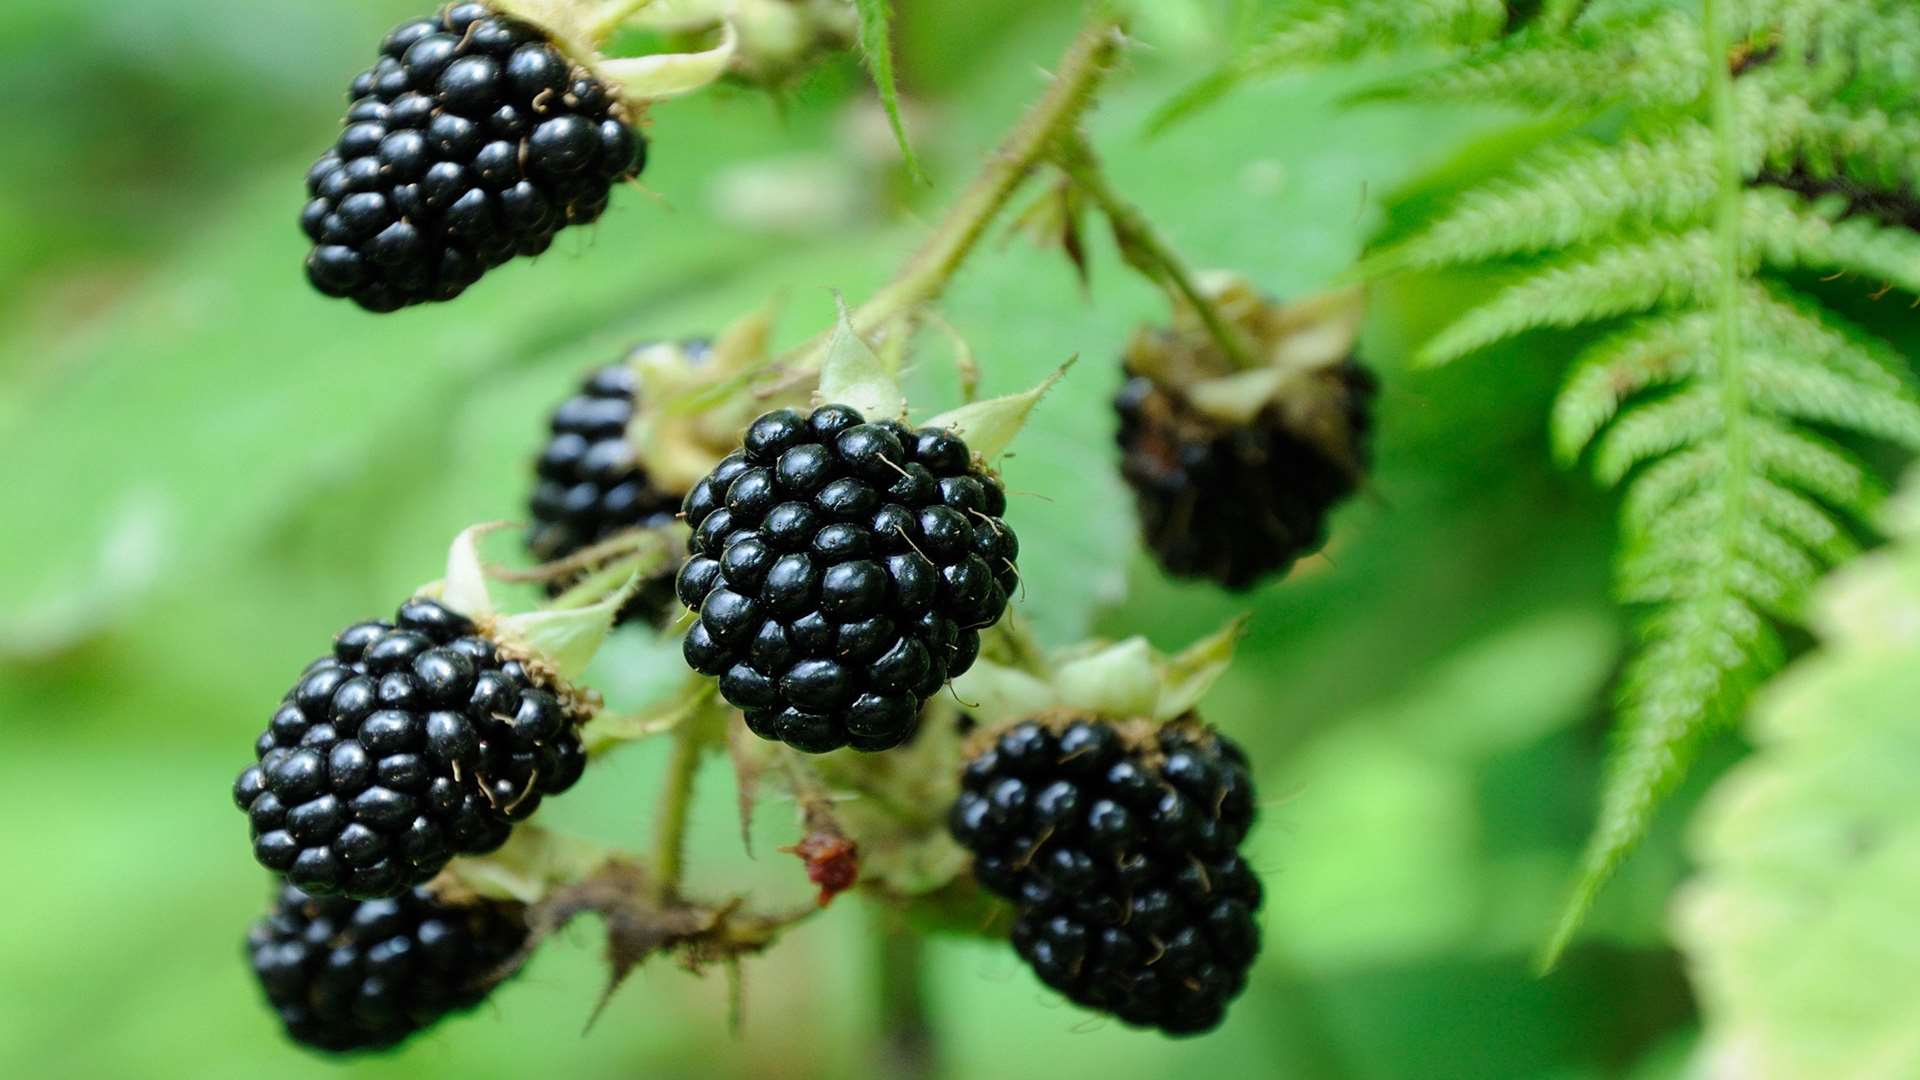 Head out into the hedgerows for some blackberries